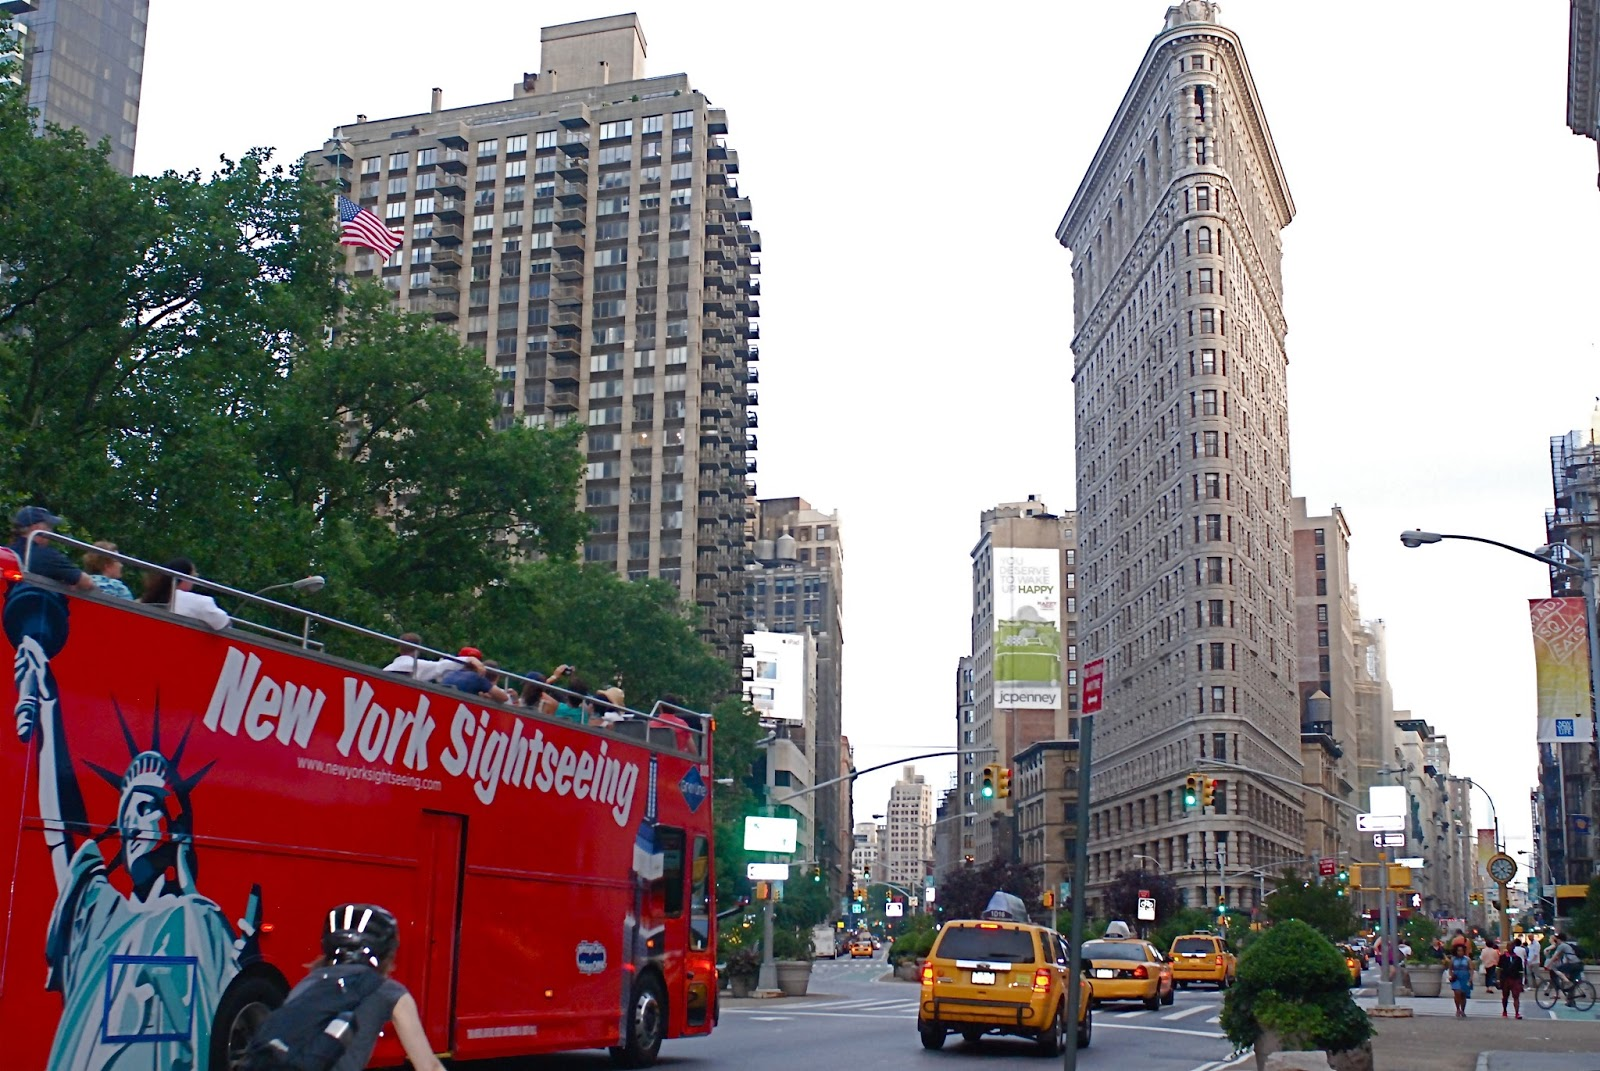 Hop-On, Hop-Off New York Day Tour Seeing all the major New York sights is exciting and easy with Big Bus Tours. Simply hop on our red route to Explore Downtown NYC. You can join the tour from 18 different stops. Every bus features both English-speaking .